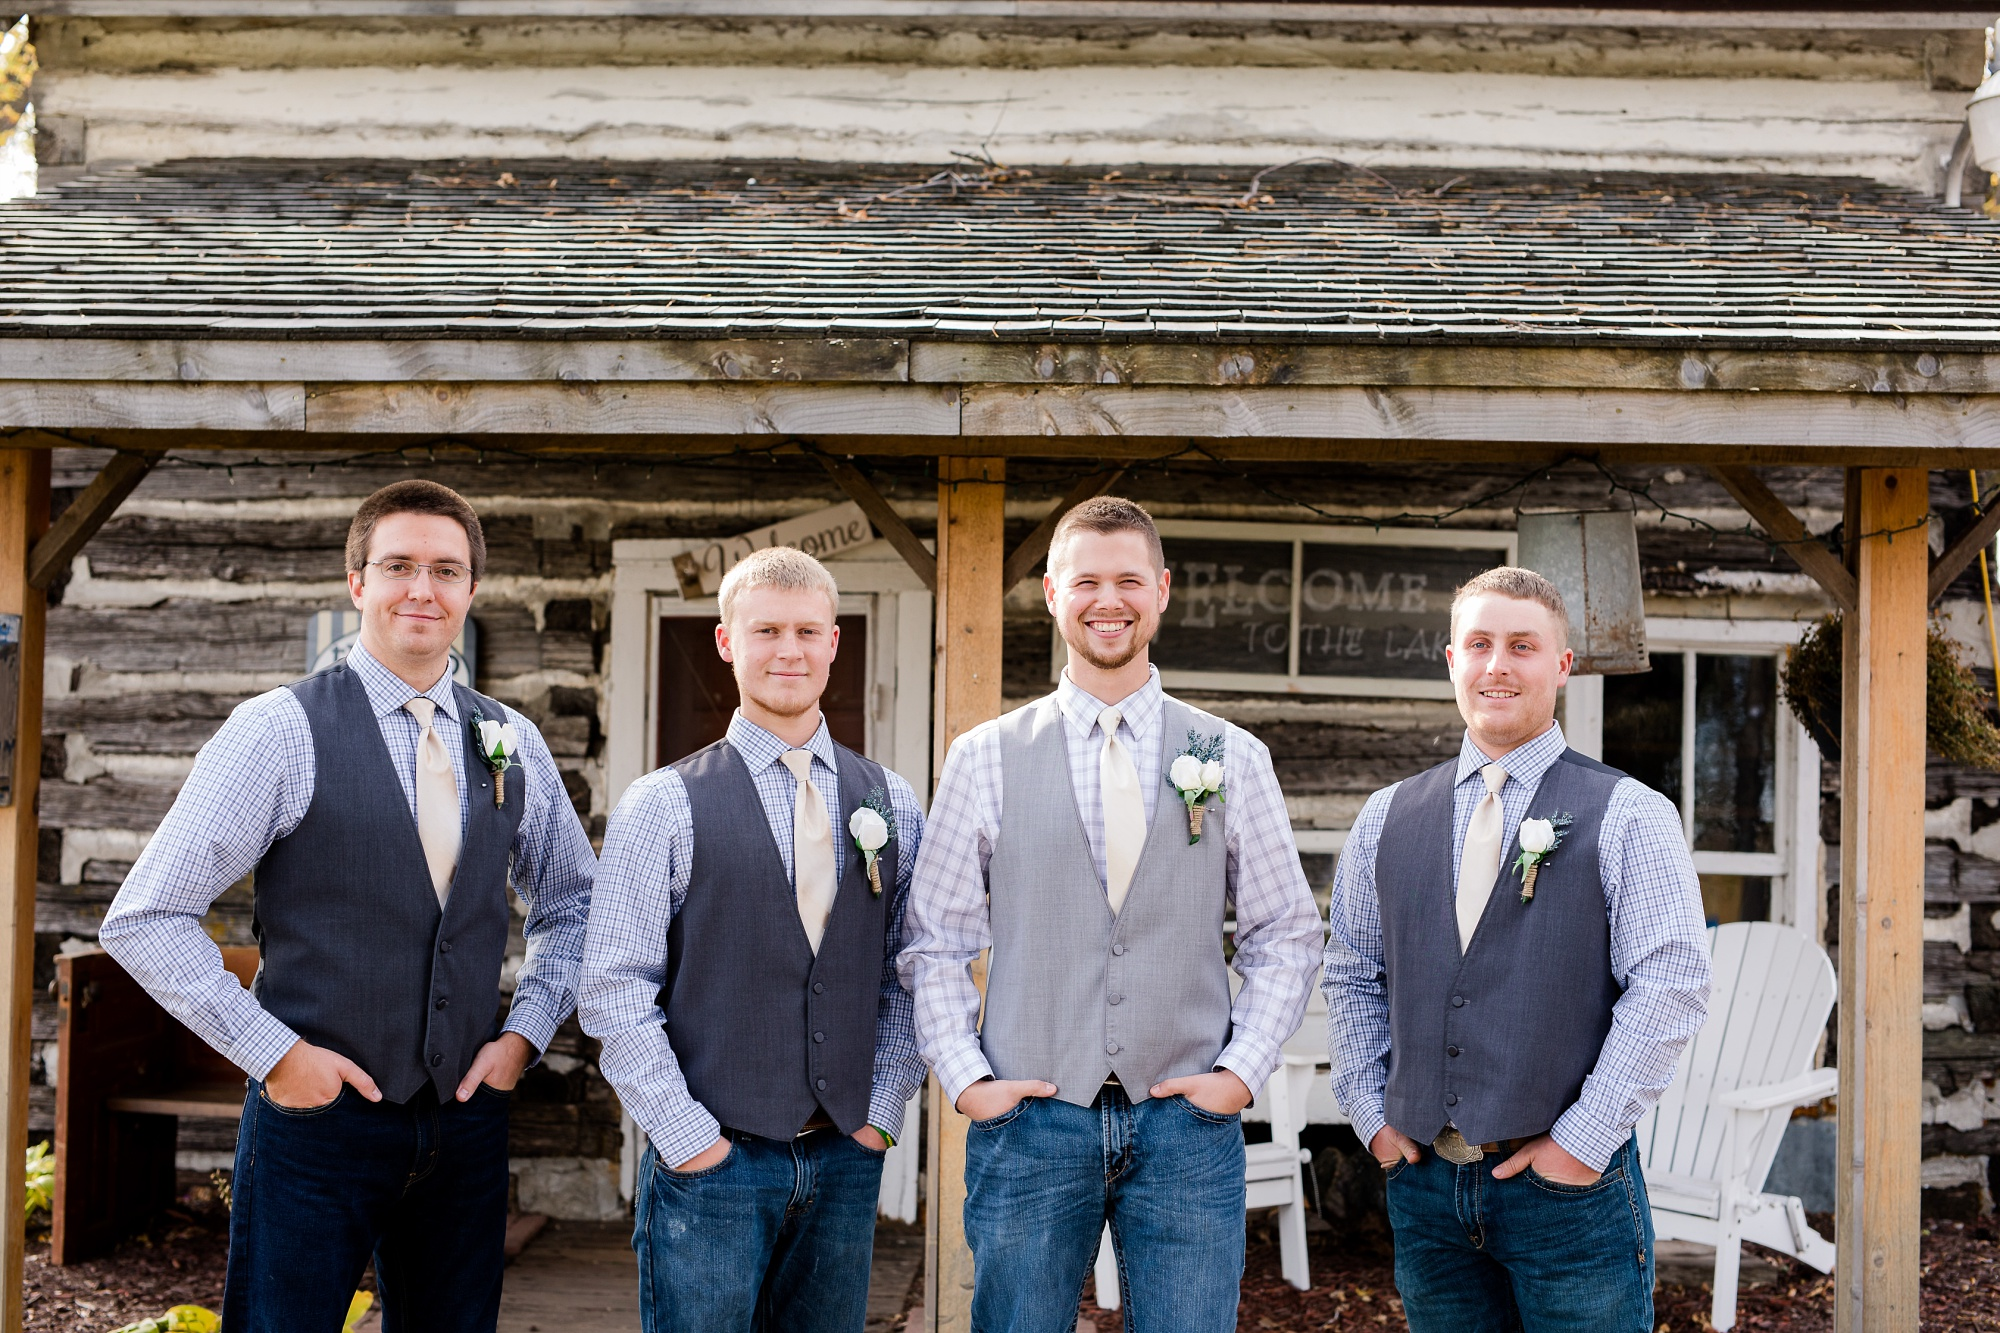 Fall, Country Styled Barn Wedding at the Barn at Dunvilla | Danielle & Jake | Photography by Amber Langerud Photography